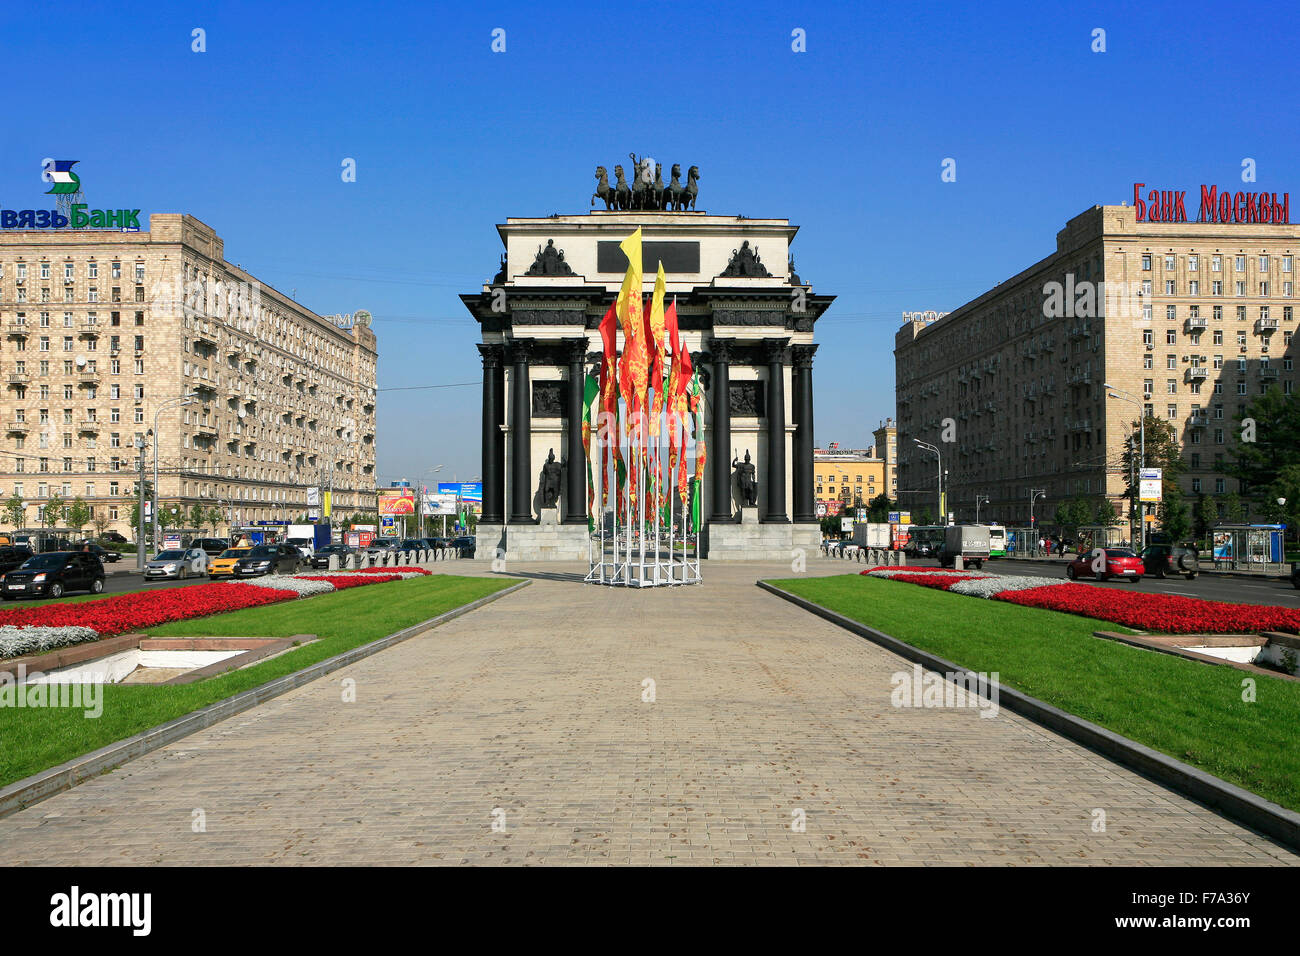 Triumphal Arch of Moscow, Russia, commemorating the 1812 victory over Napoleon's army - Stock Image